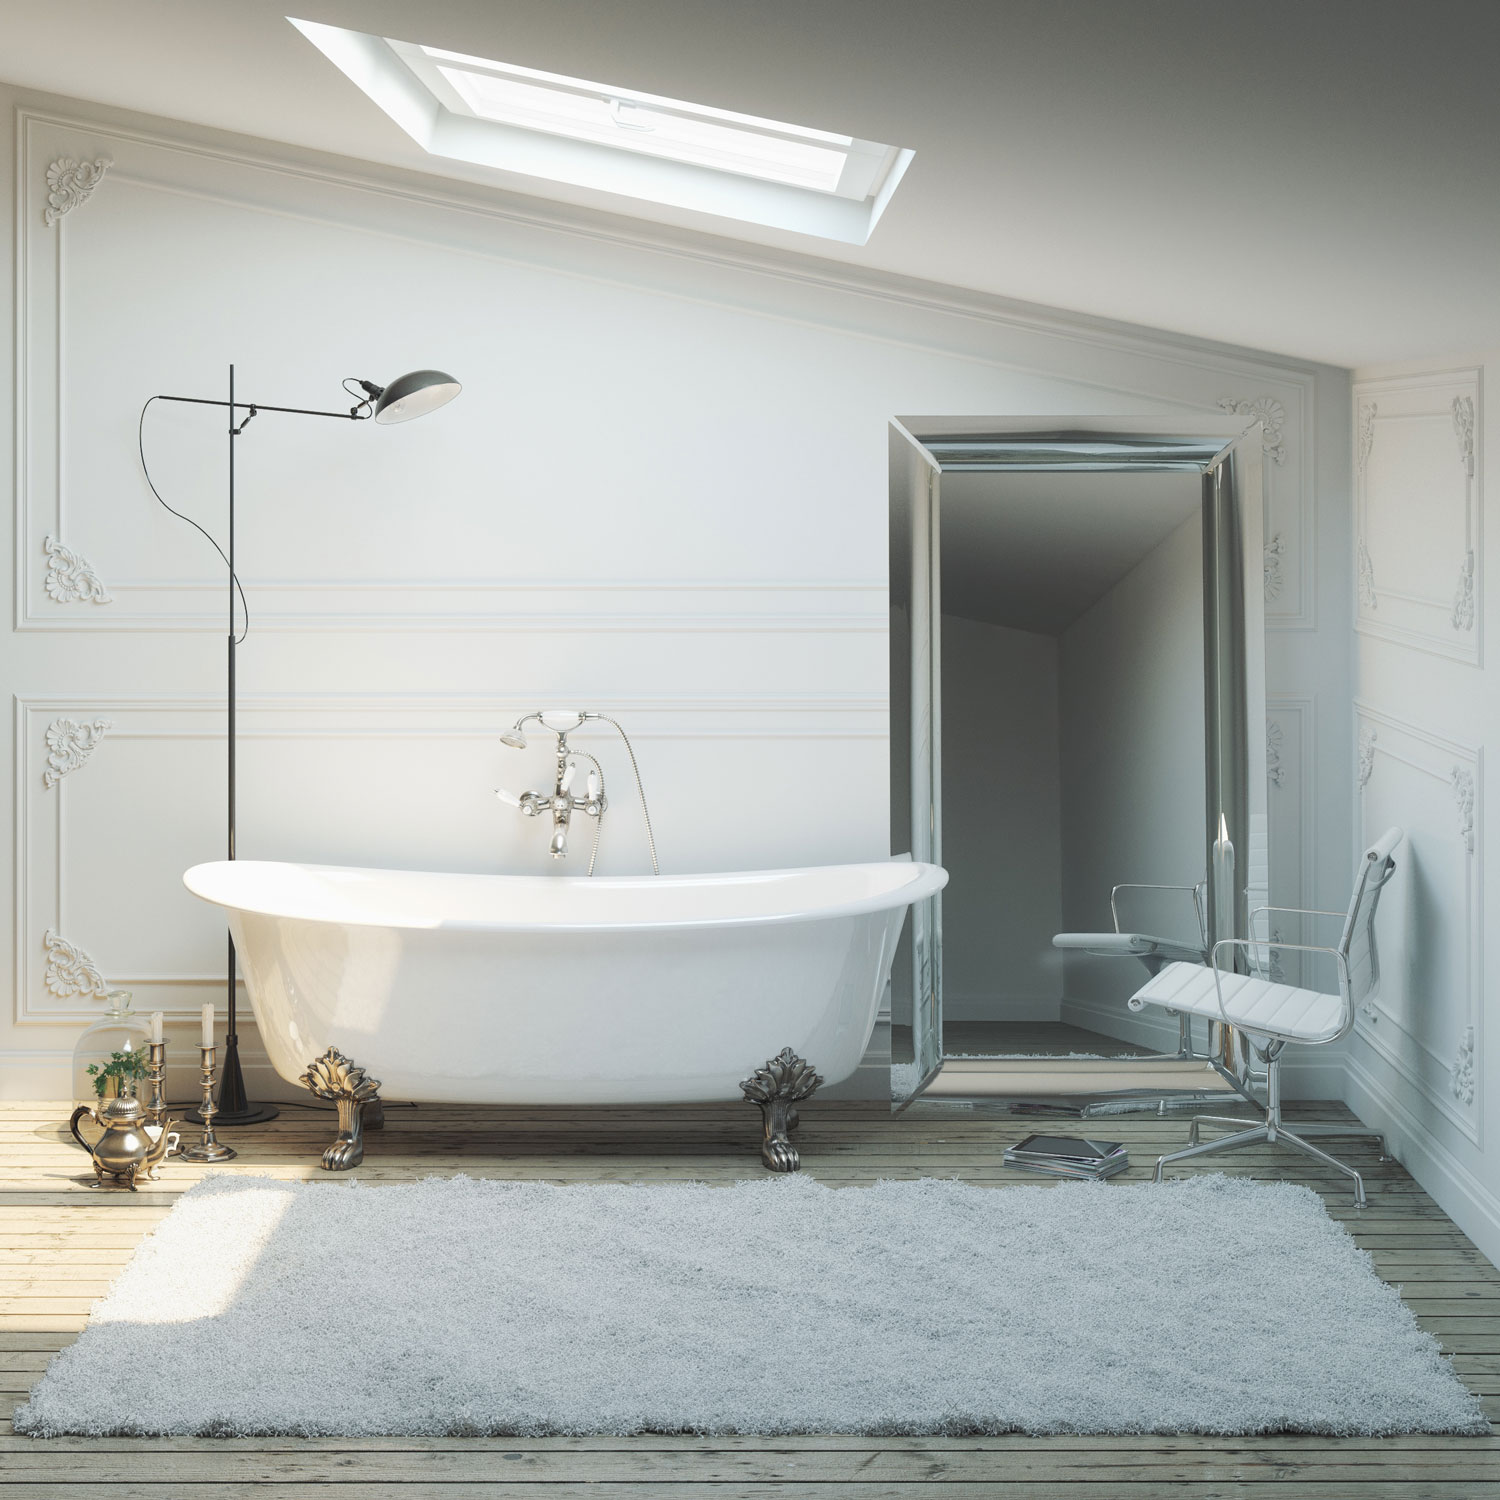 A touch of Elegance. - Traditional bathrooms have increased in popularity in recent years as they add a touch of elegance to any home.If you live in a period property and would like the style and character of your home to flow throughout we can create the perfect traditional bathroom with styles from periods such as Georgian, Victorian and Edwardian.Traditional bathrooms allow you to relax and unwind in luxury with freestanding baths and pedestal basins.